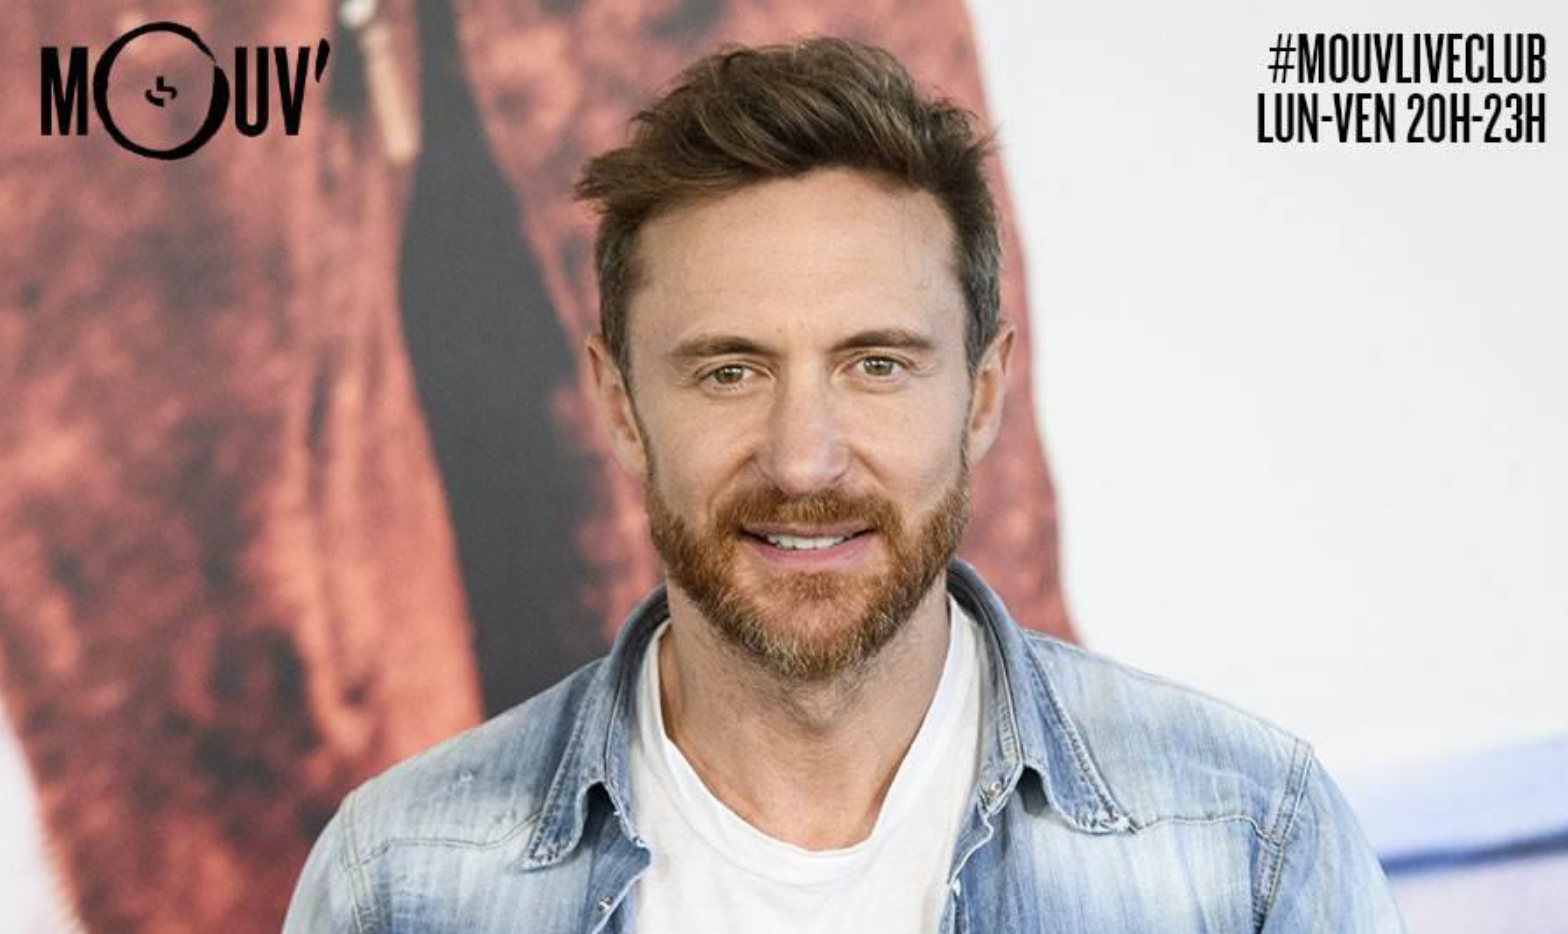 David Guetta : un mix hip-hop exclusif sur Mouv'